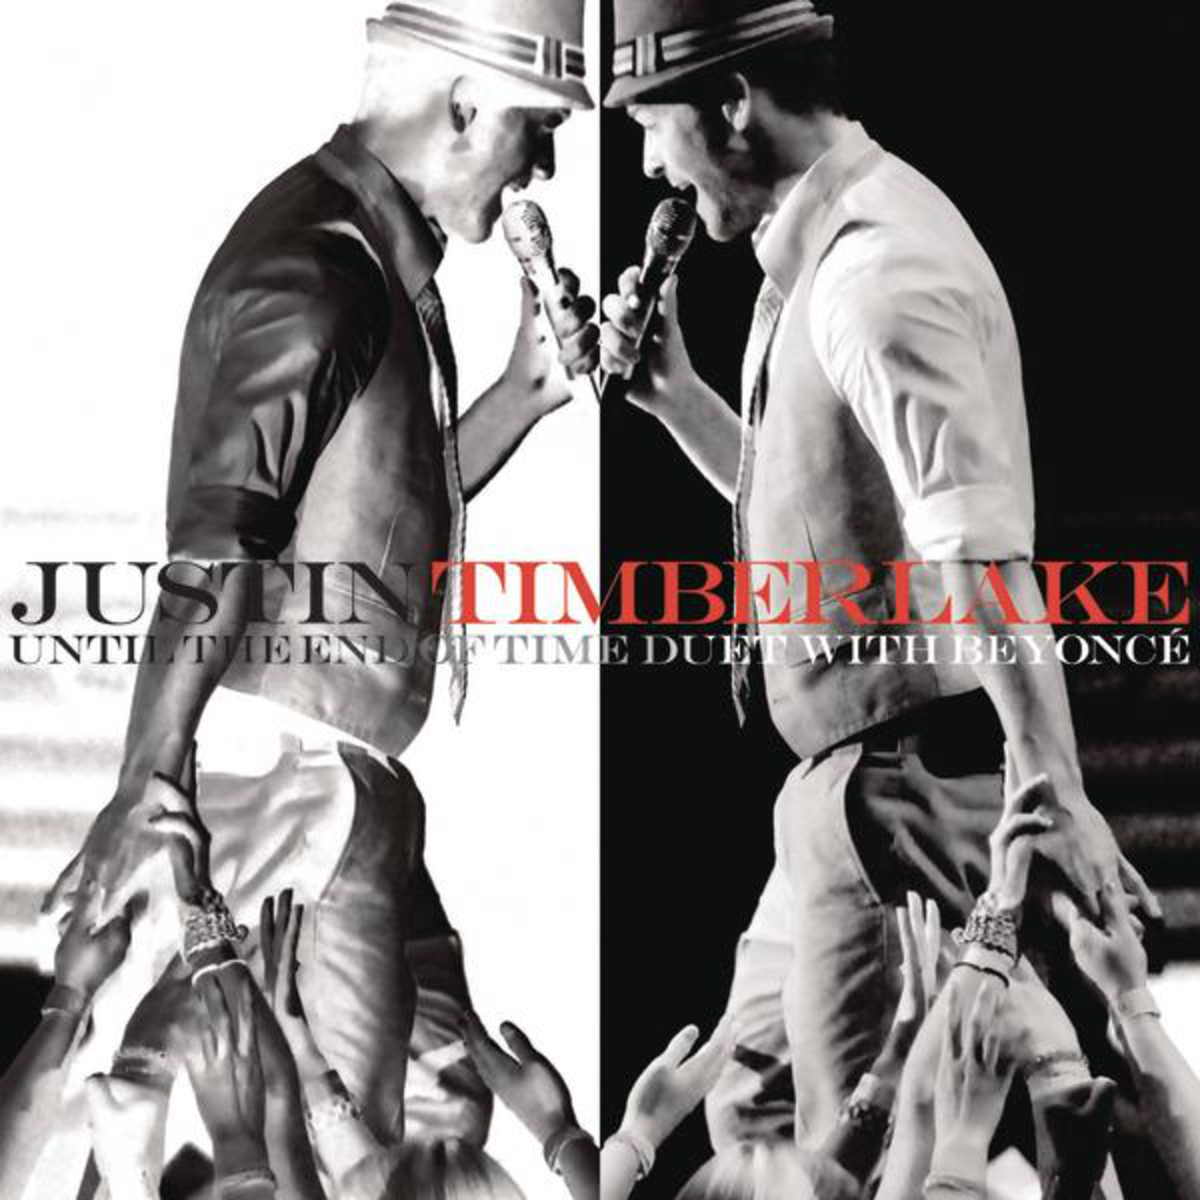 Artwork of Until the End of Time (duet with Beyoncé)